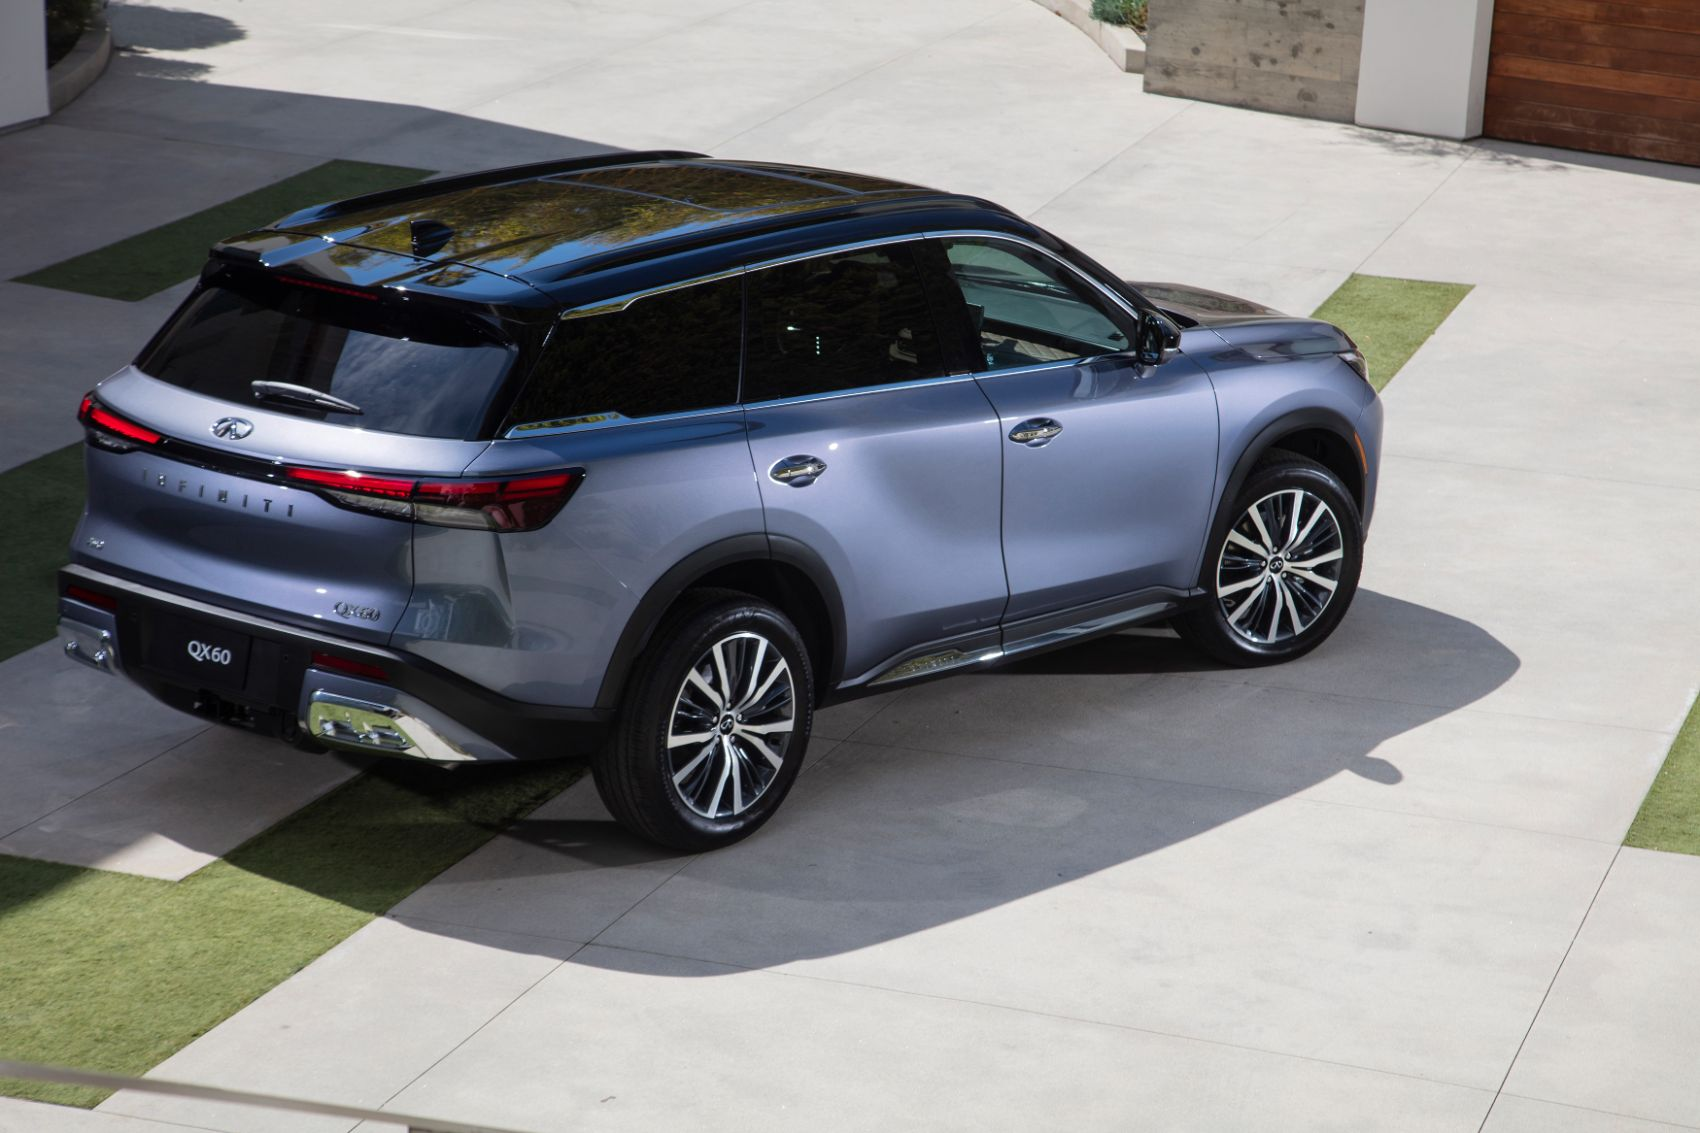 2022 Infiniti QX60 Overview: Trim Levels, New Tech Features, Pricing & More